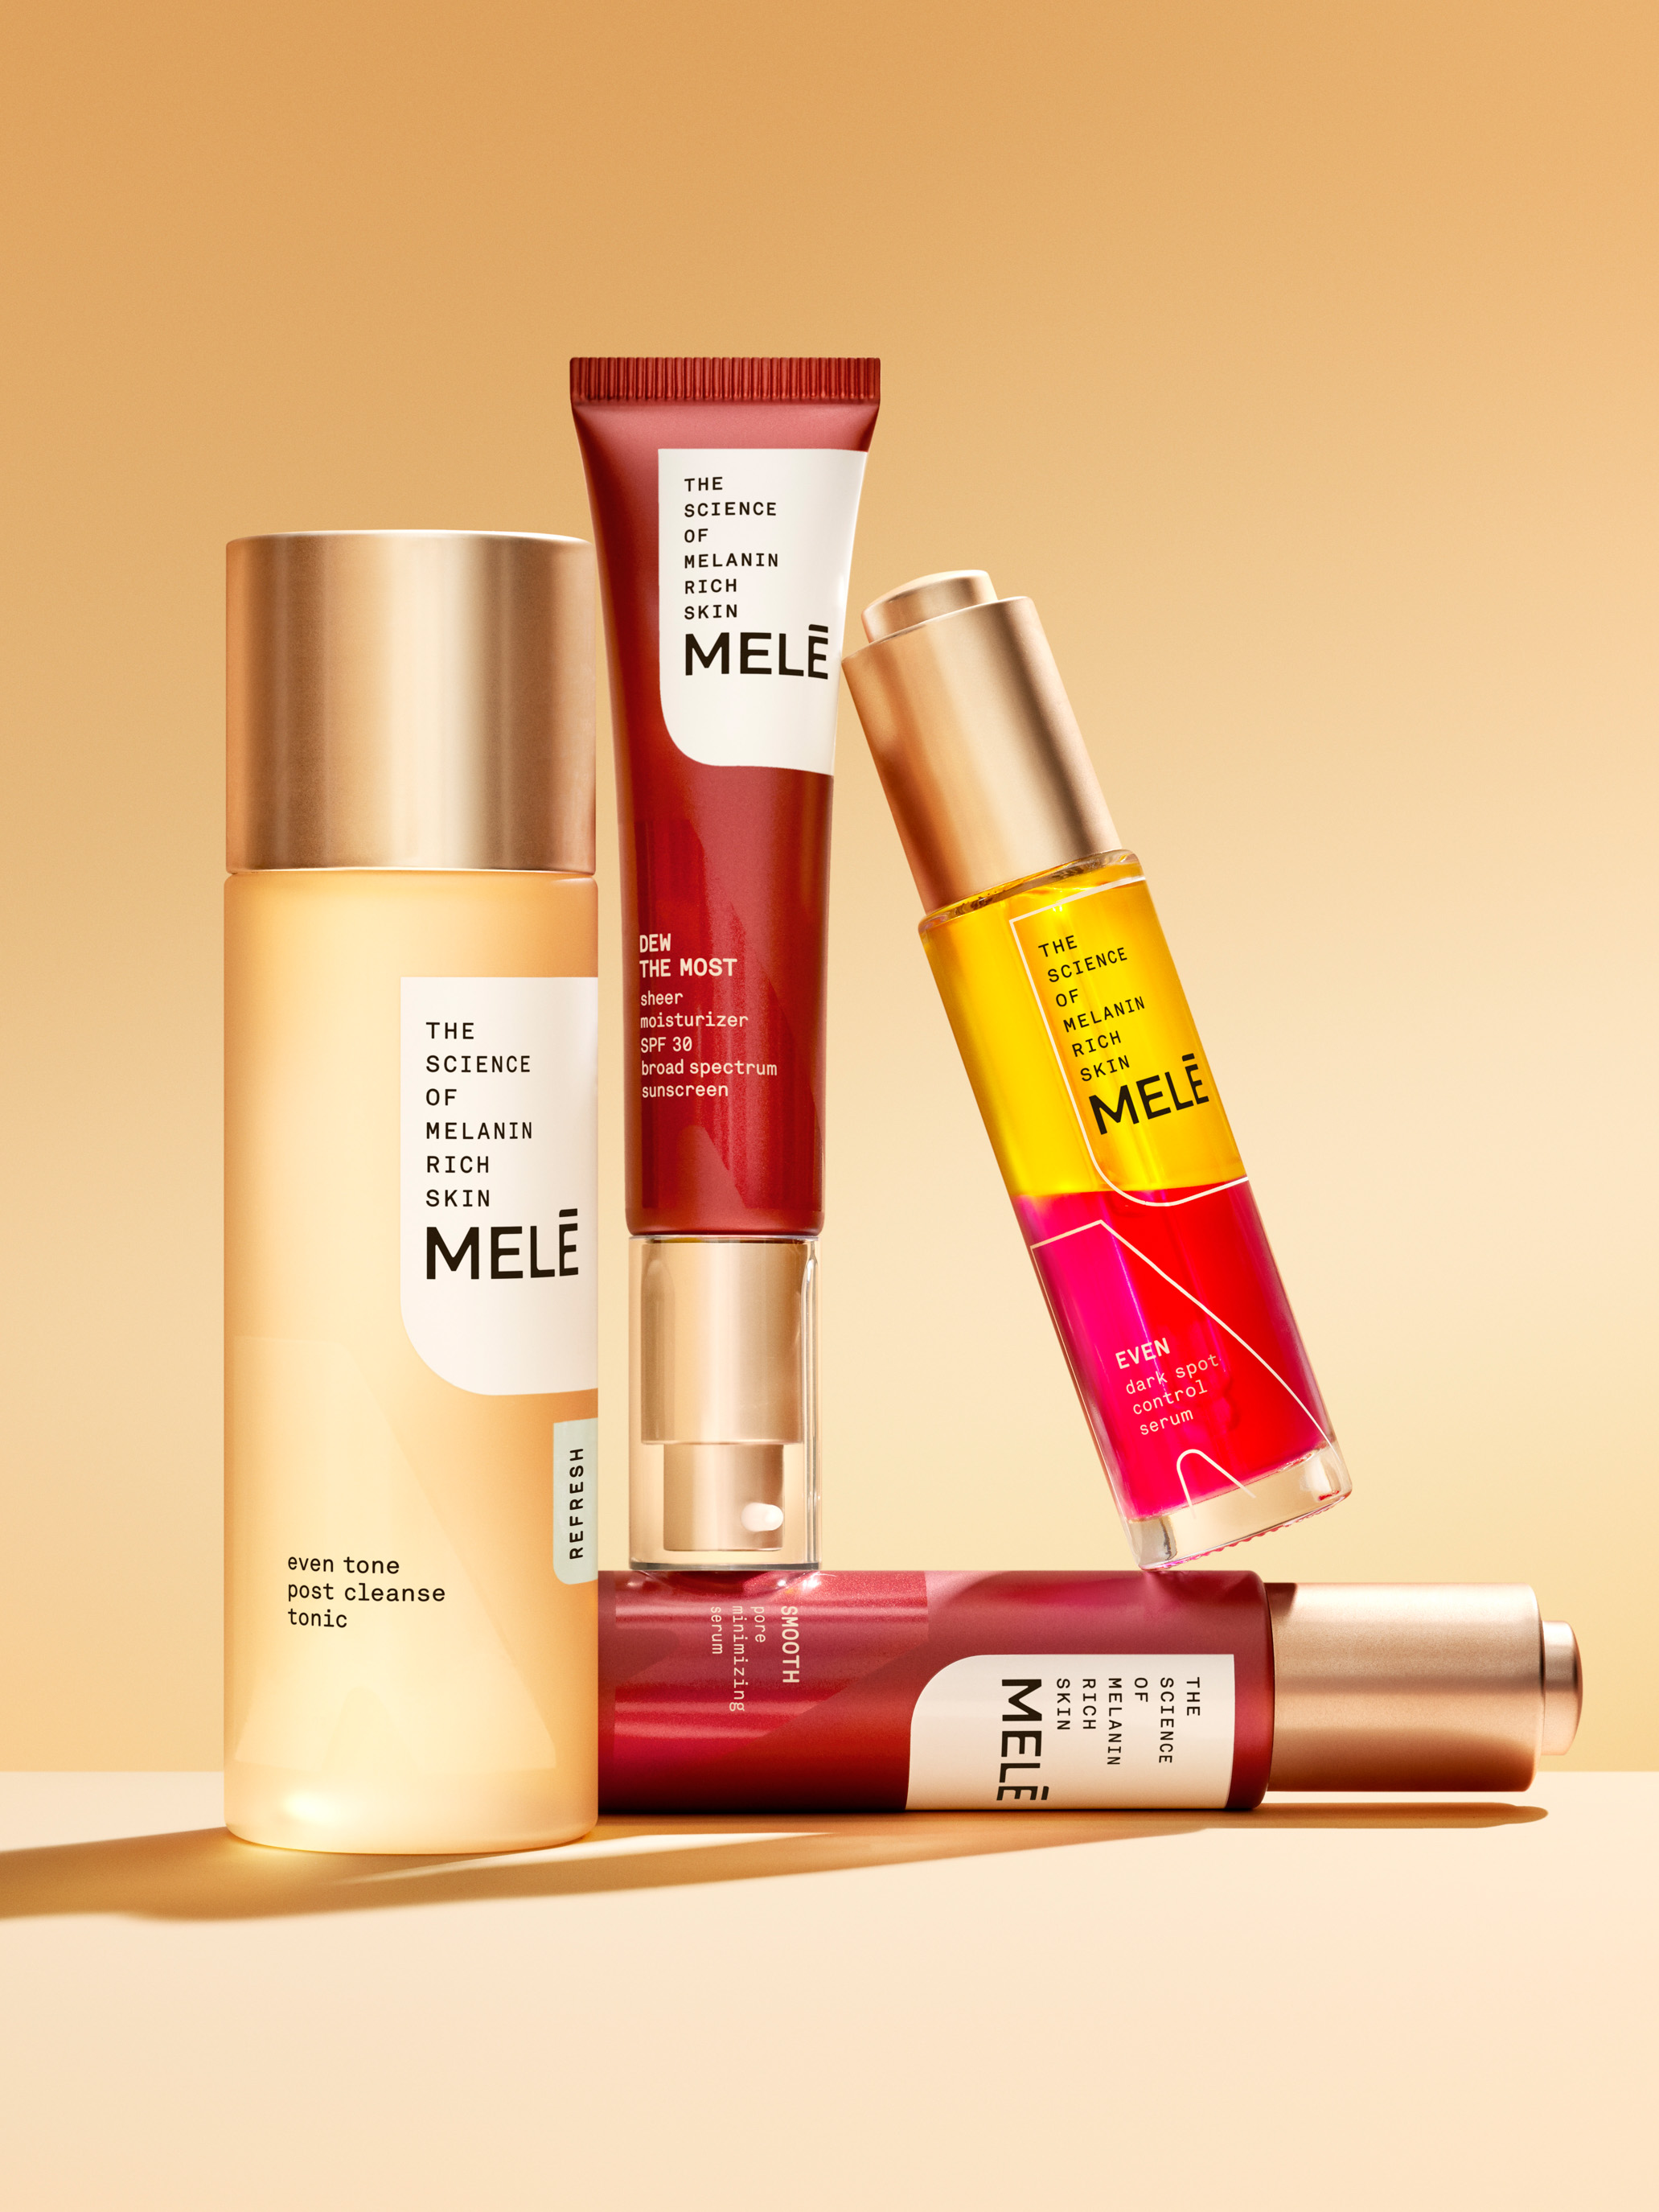 STAN_MELE_SKINCARE_SMALL_GROUP.JPG